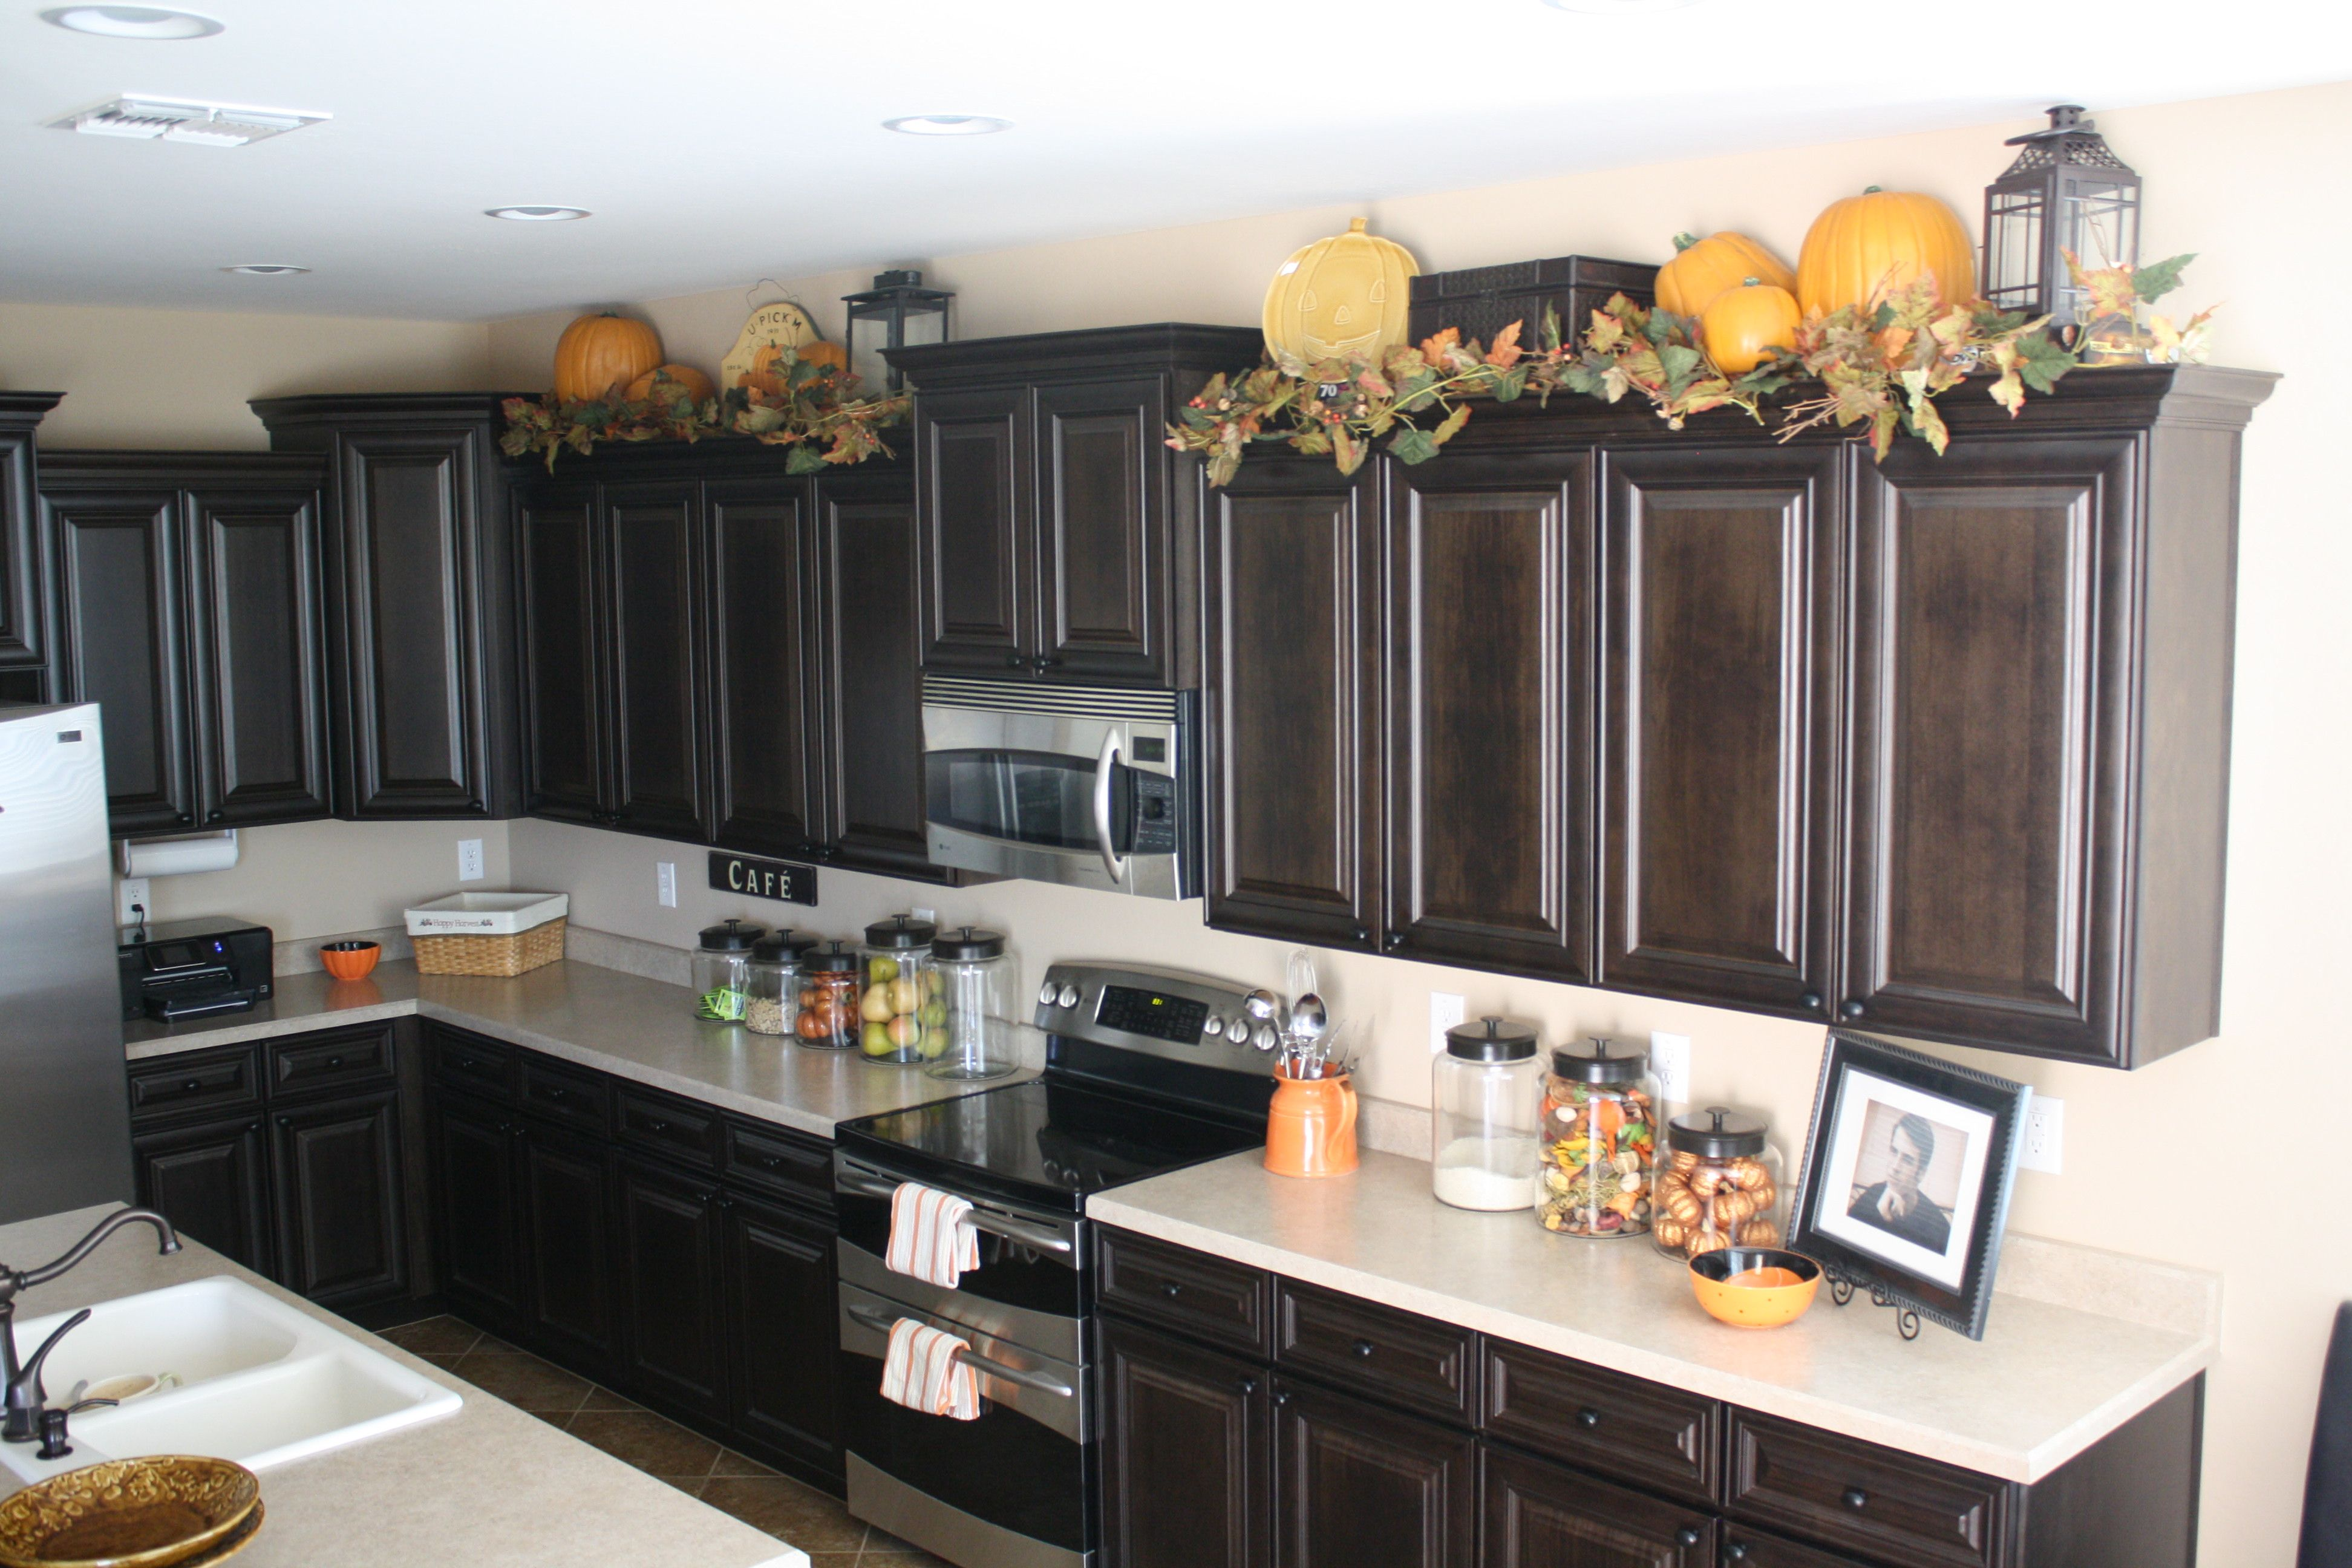 Decorating Kitchen Cabinet Tops Lanterns On Top Of Kitchen Cabinets Decor Ideas